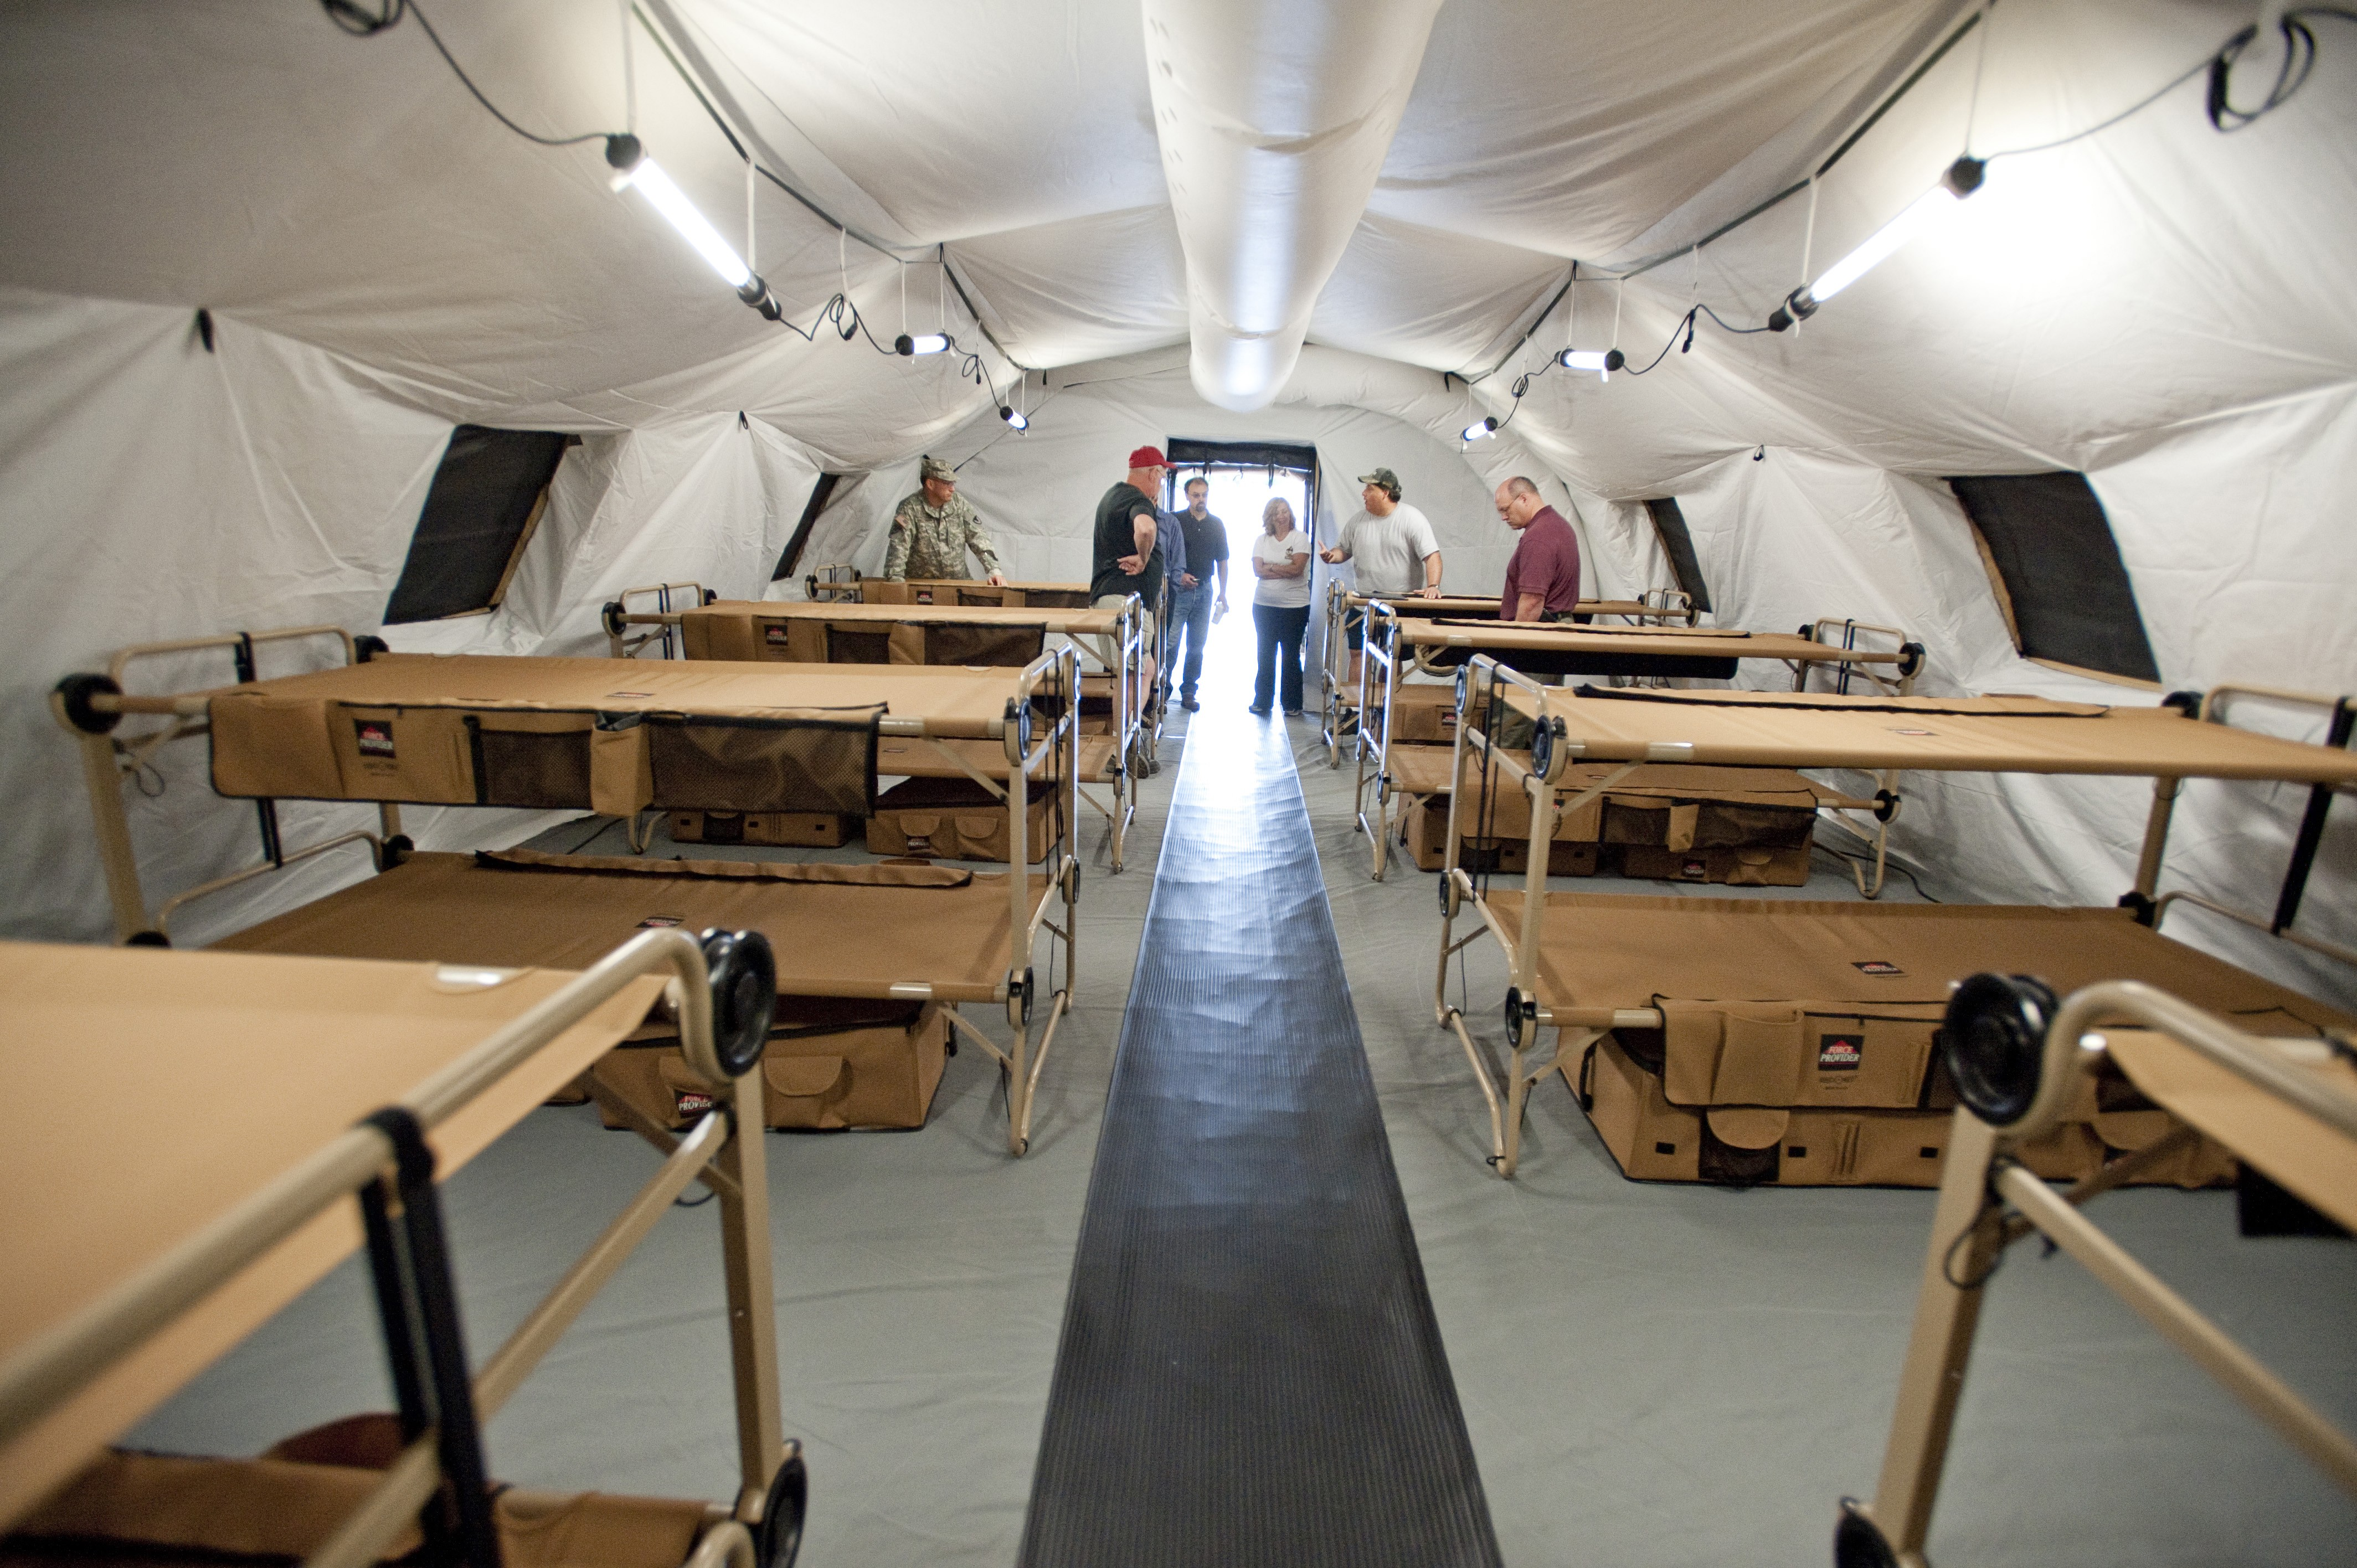 Providing shelter for Soldiers & Providing shelter for Soldiers | Article | The United States Army